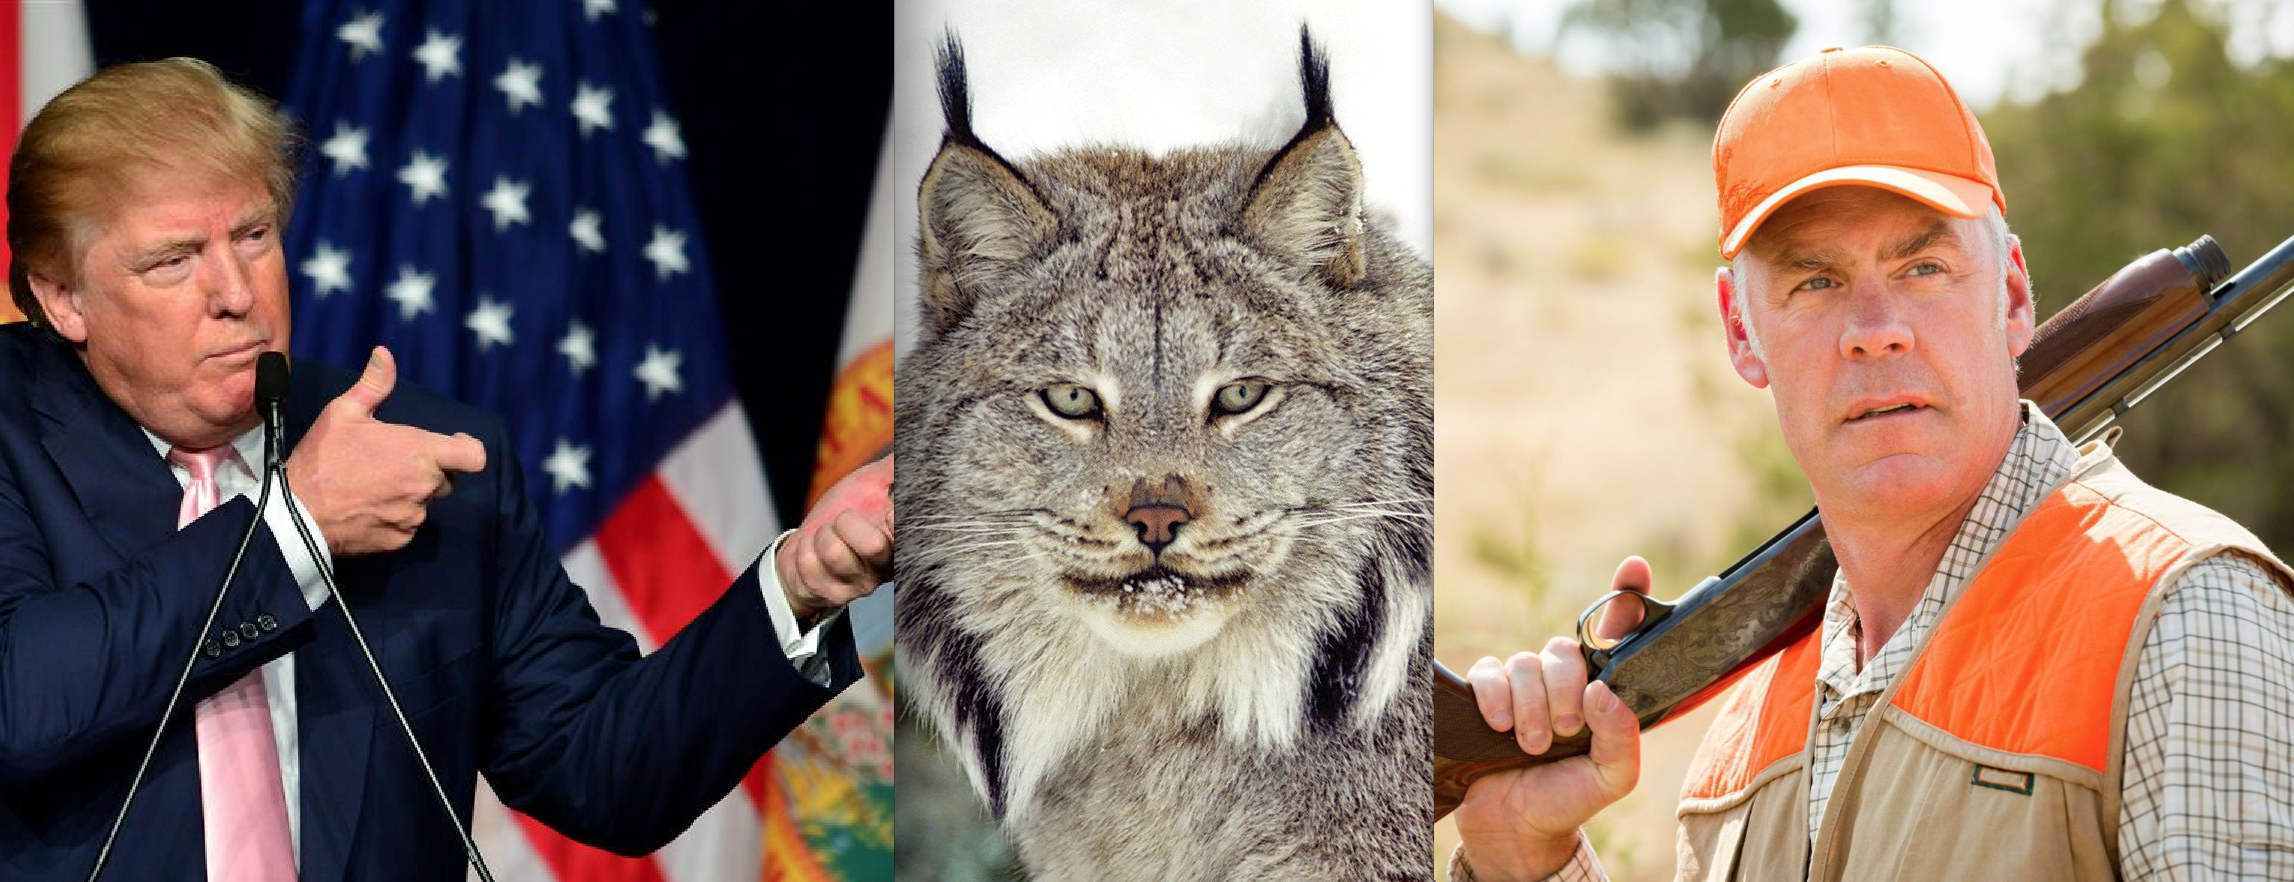 Trump Admin Announces It Will Strip Canada Lynx of Endangered Species Protection